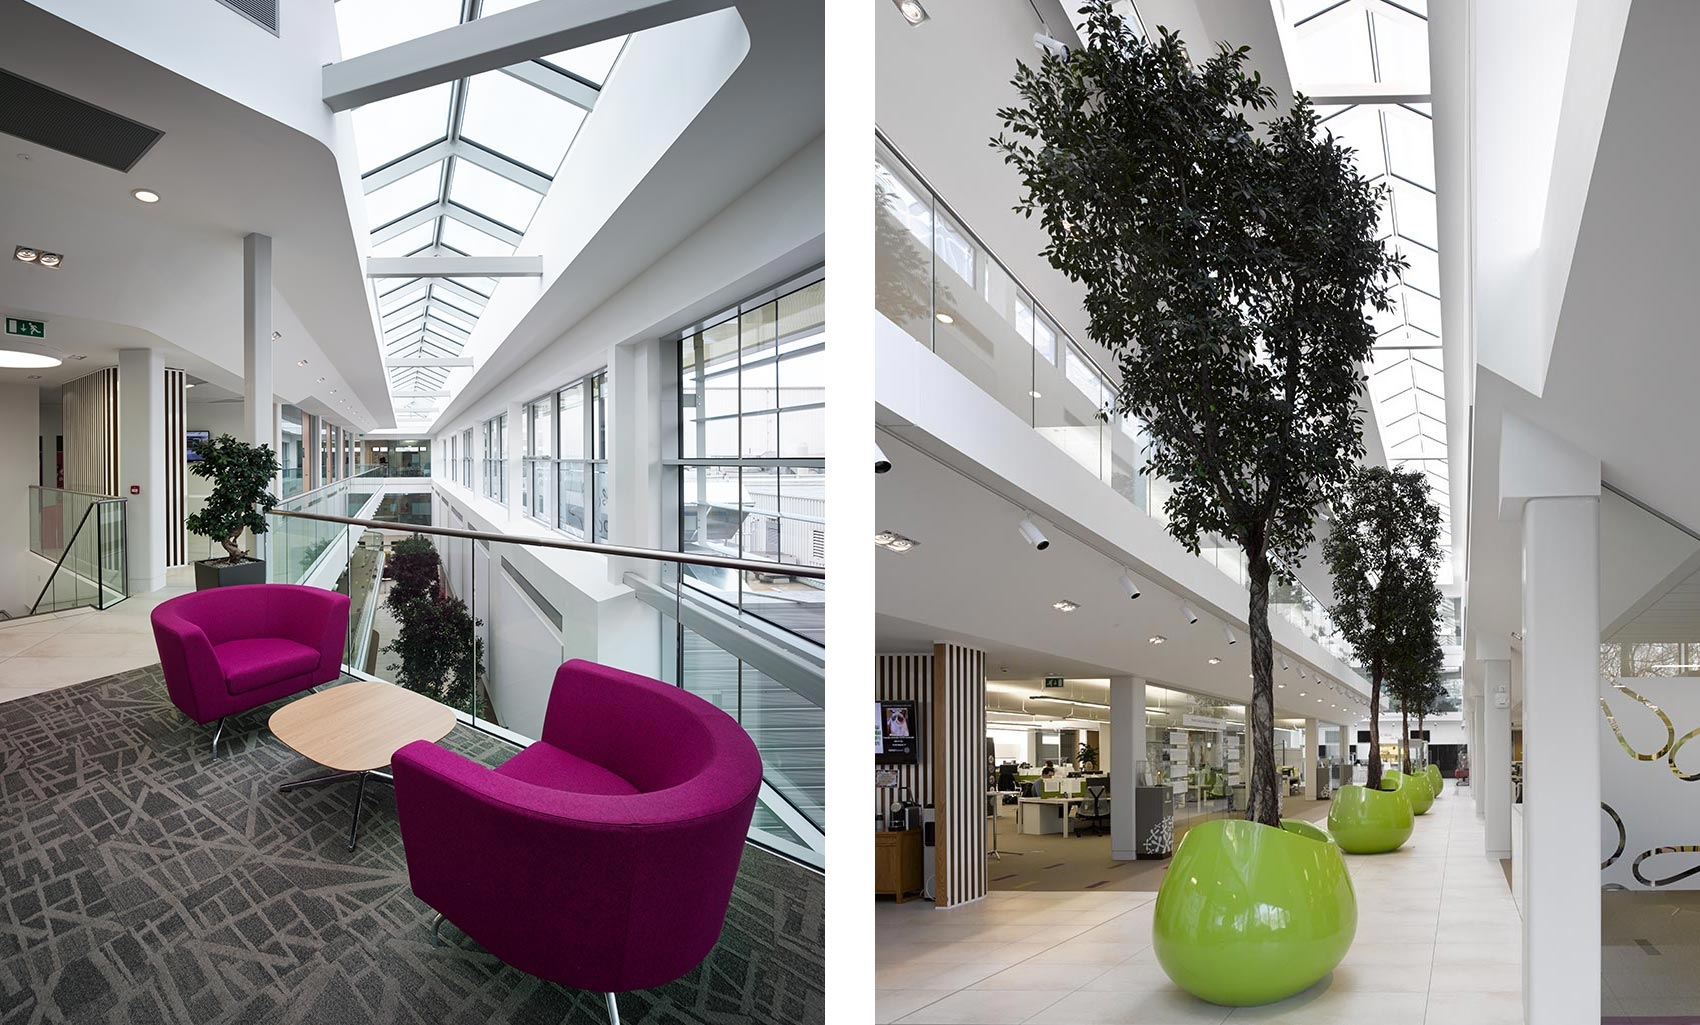 Nestlé Product Technology Centre, Walkways